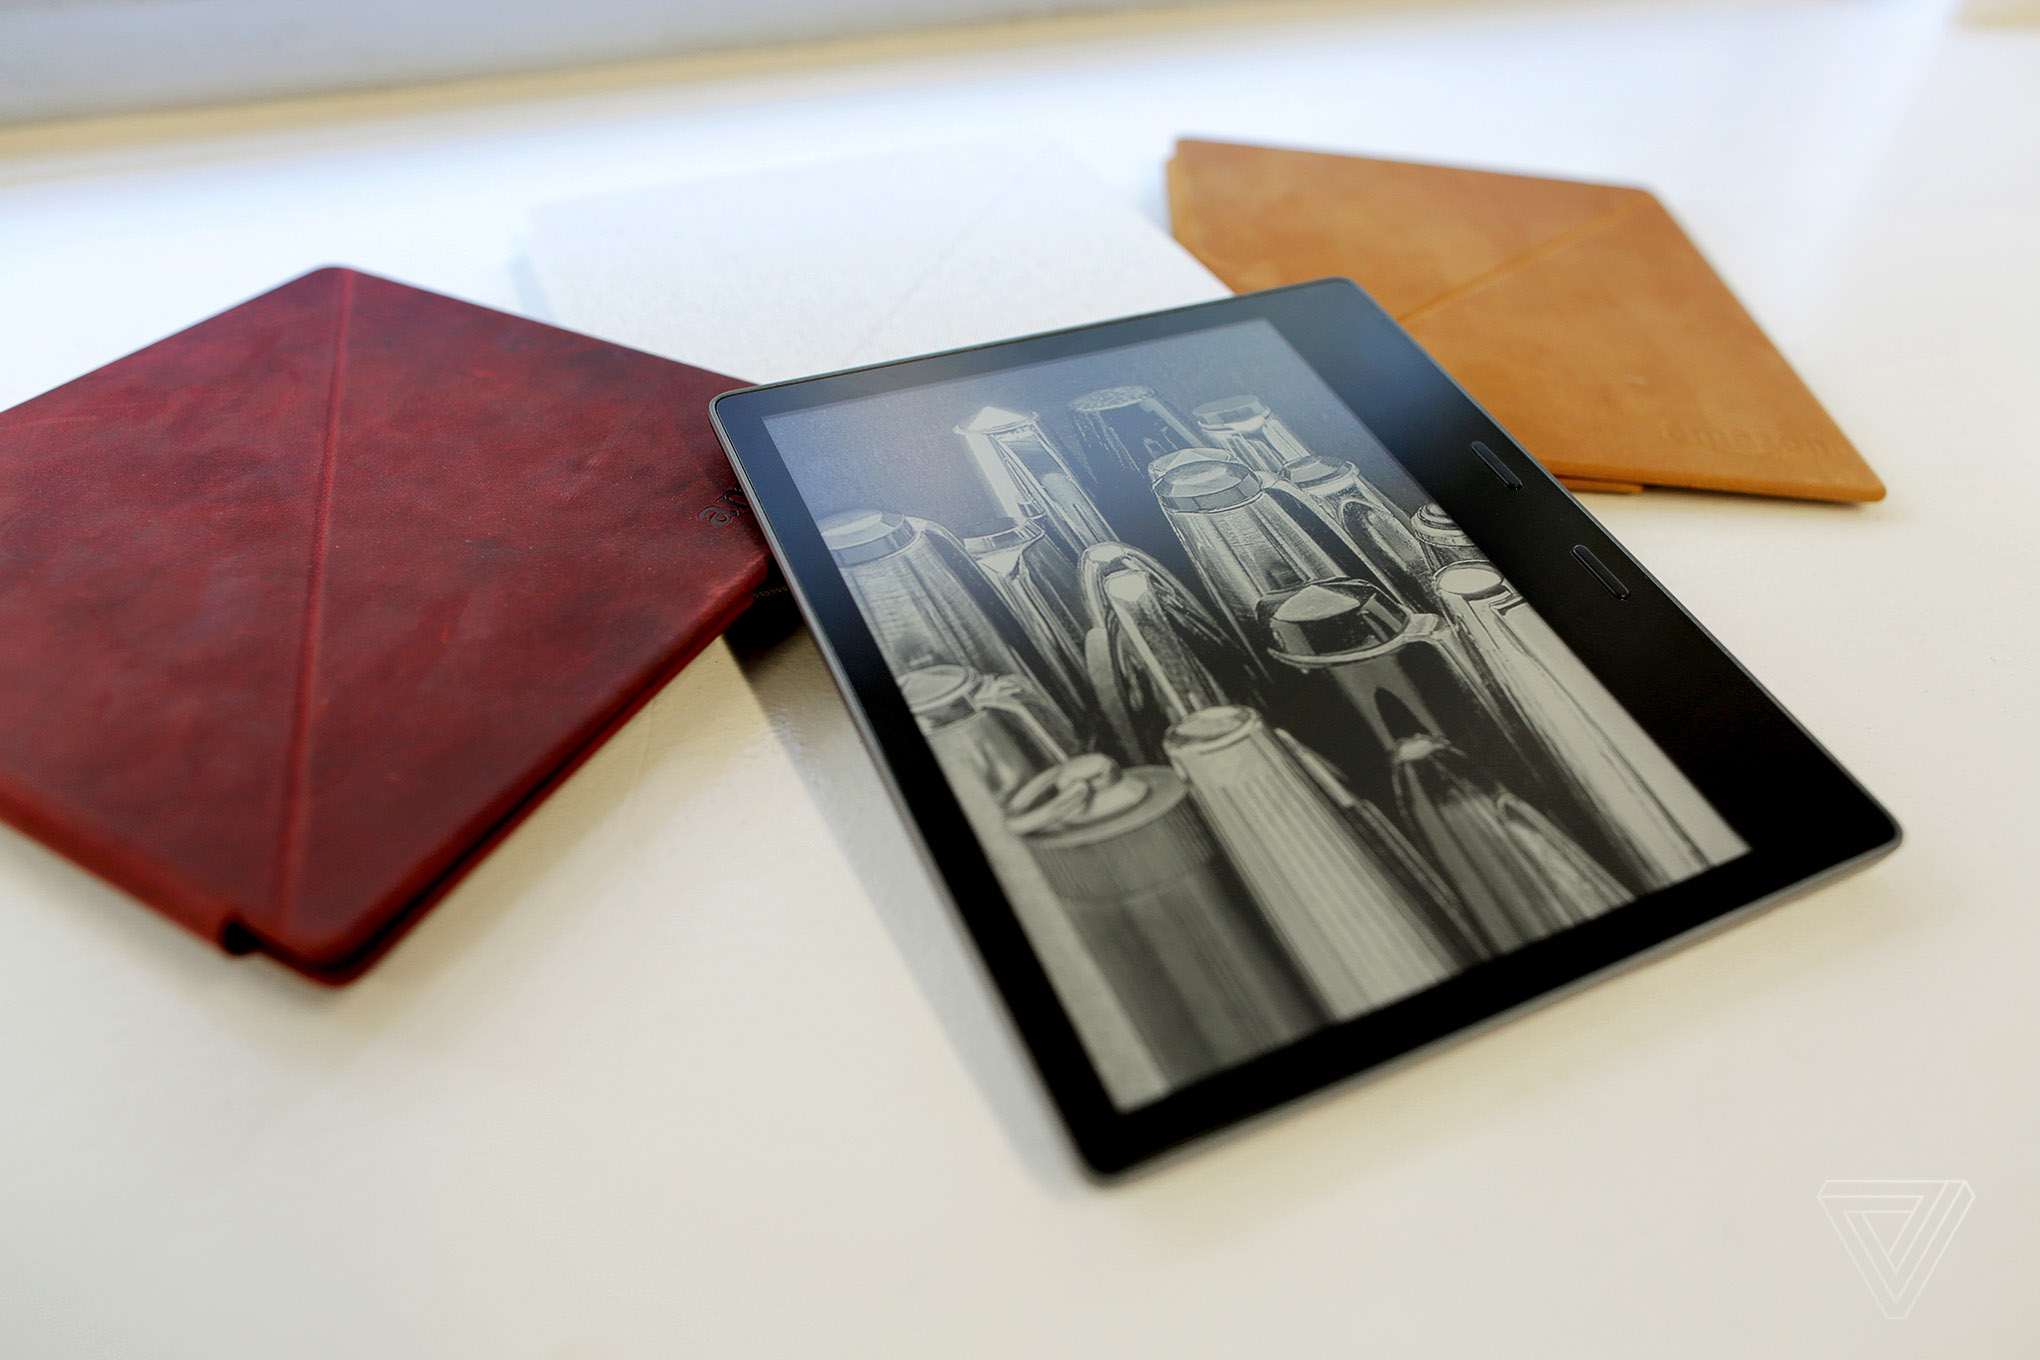 Amazon unveils the new Kindle Oasis, its highest-resolution e-reader yet